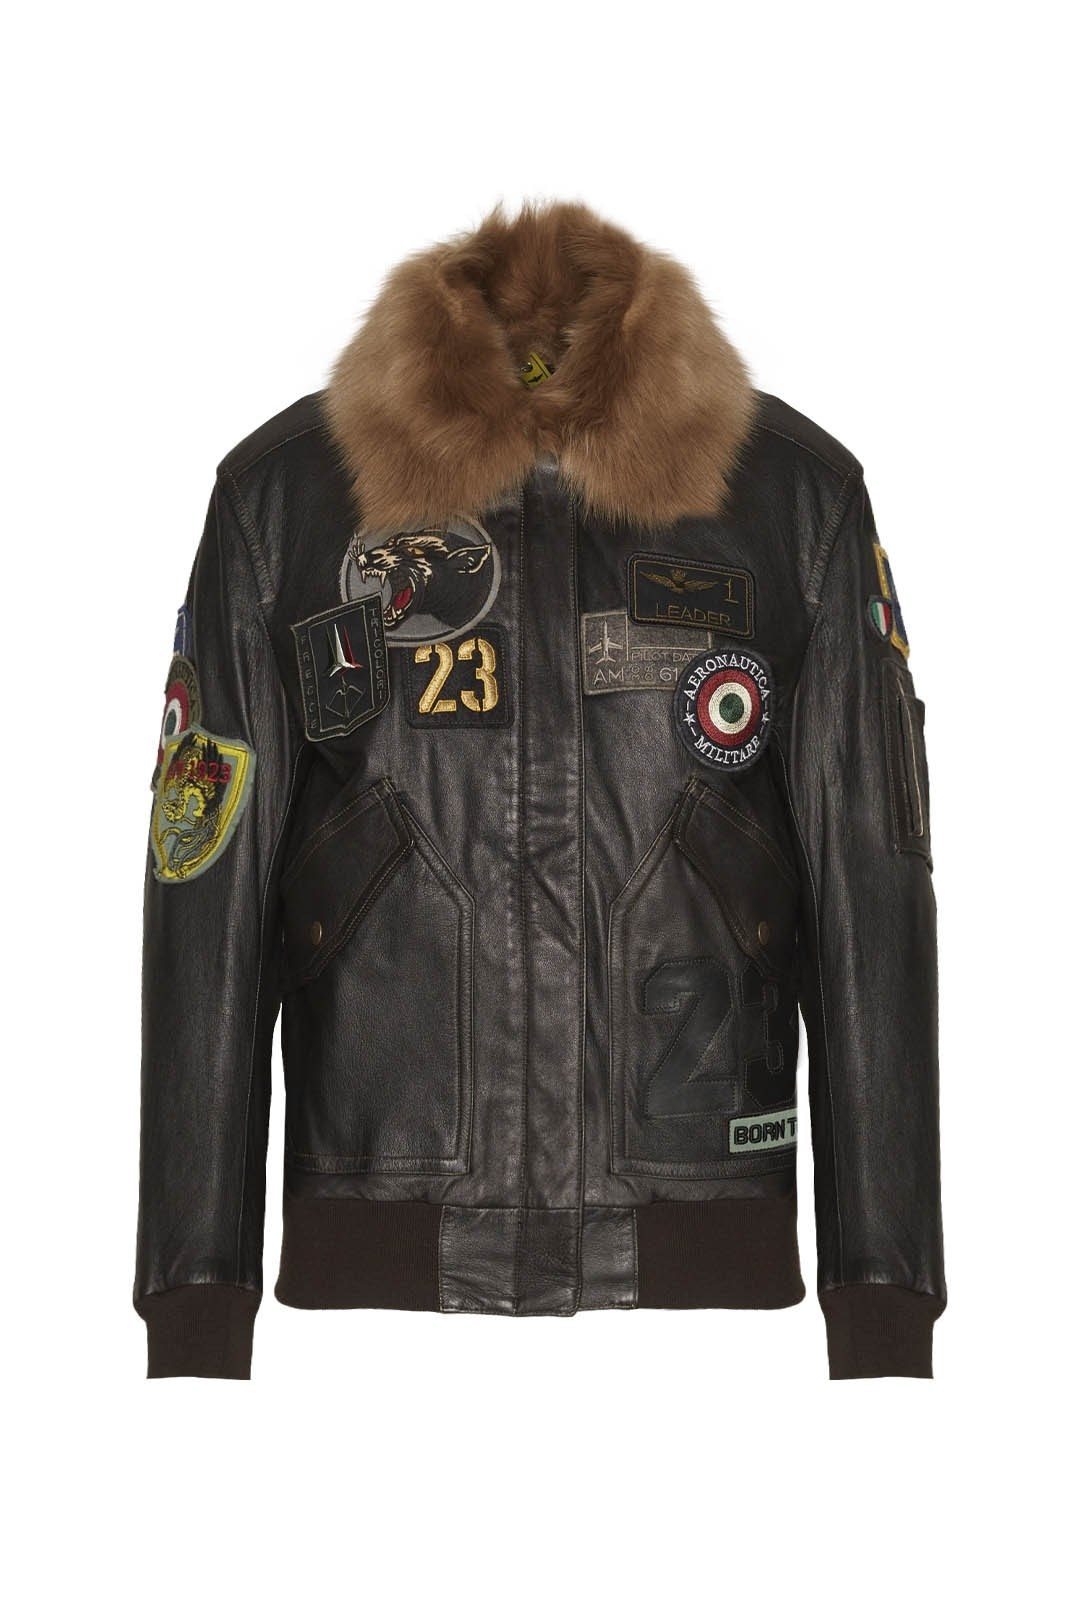 Collared leather Pilot jacket with patch 1